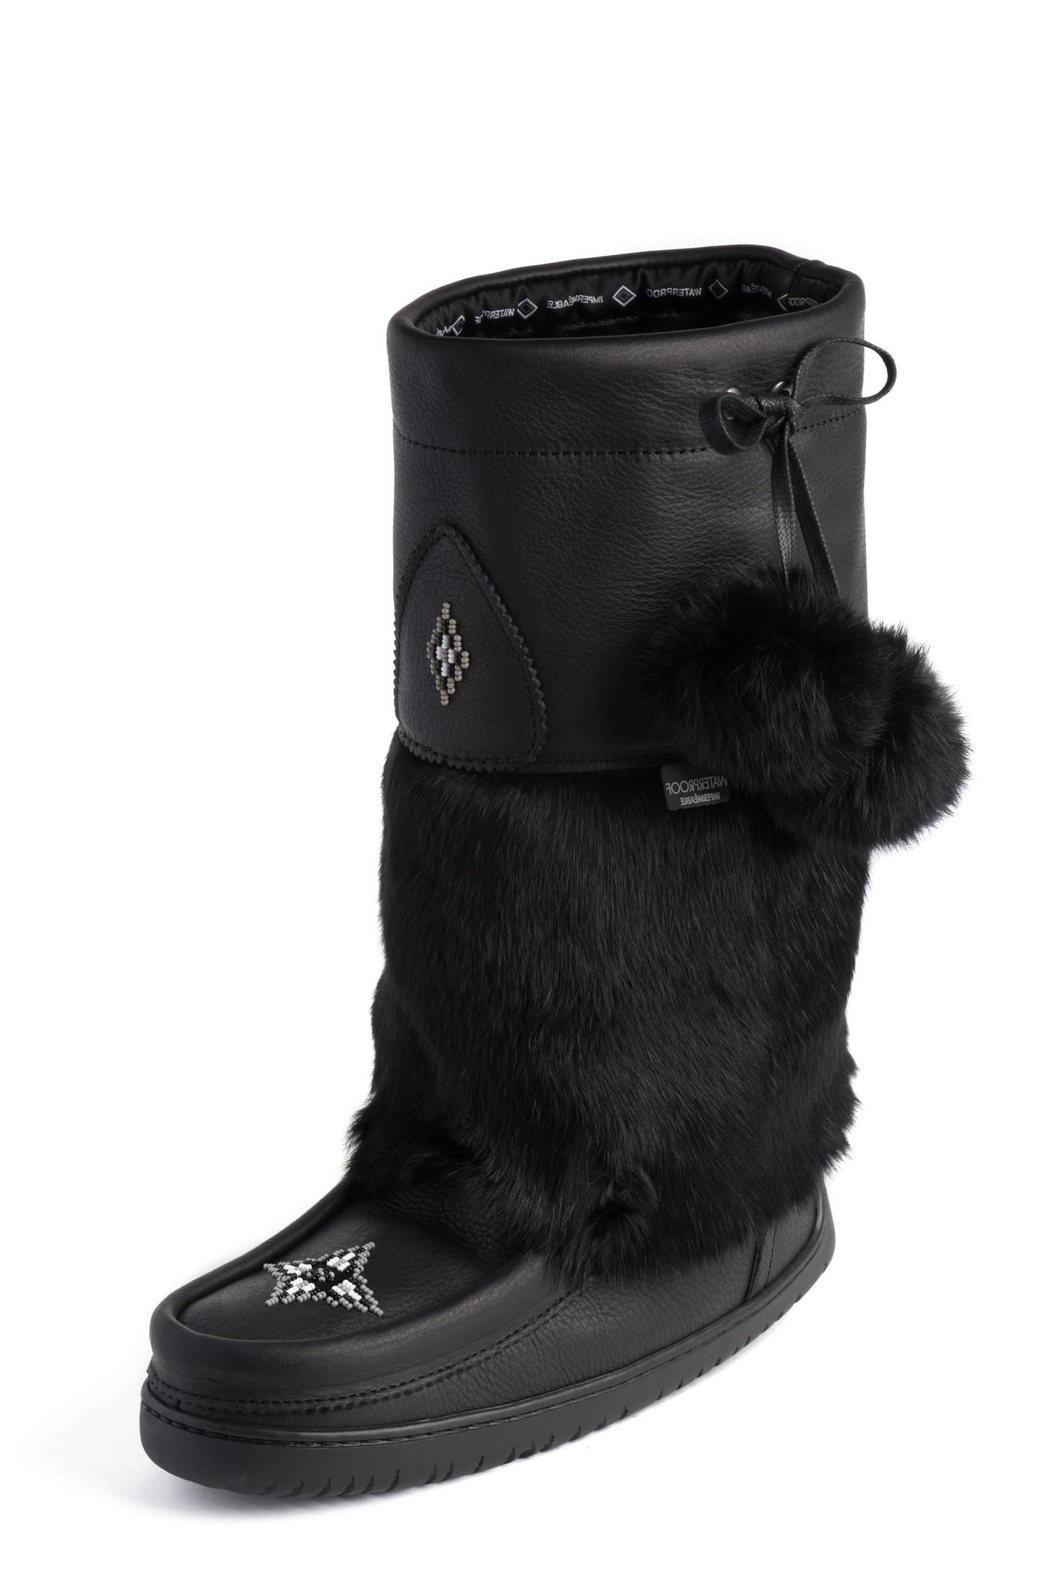 1266d7e7780 Manitobah Mukluks Waterproof Snowy Owl from Alberta by TNT Clothing ...